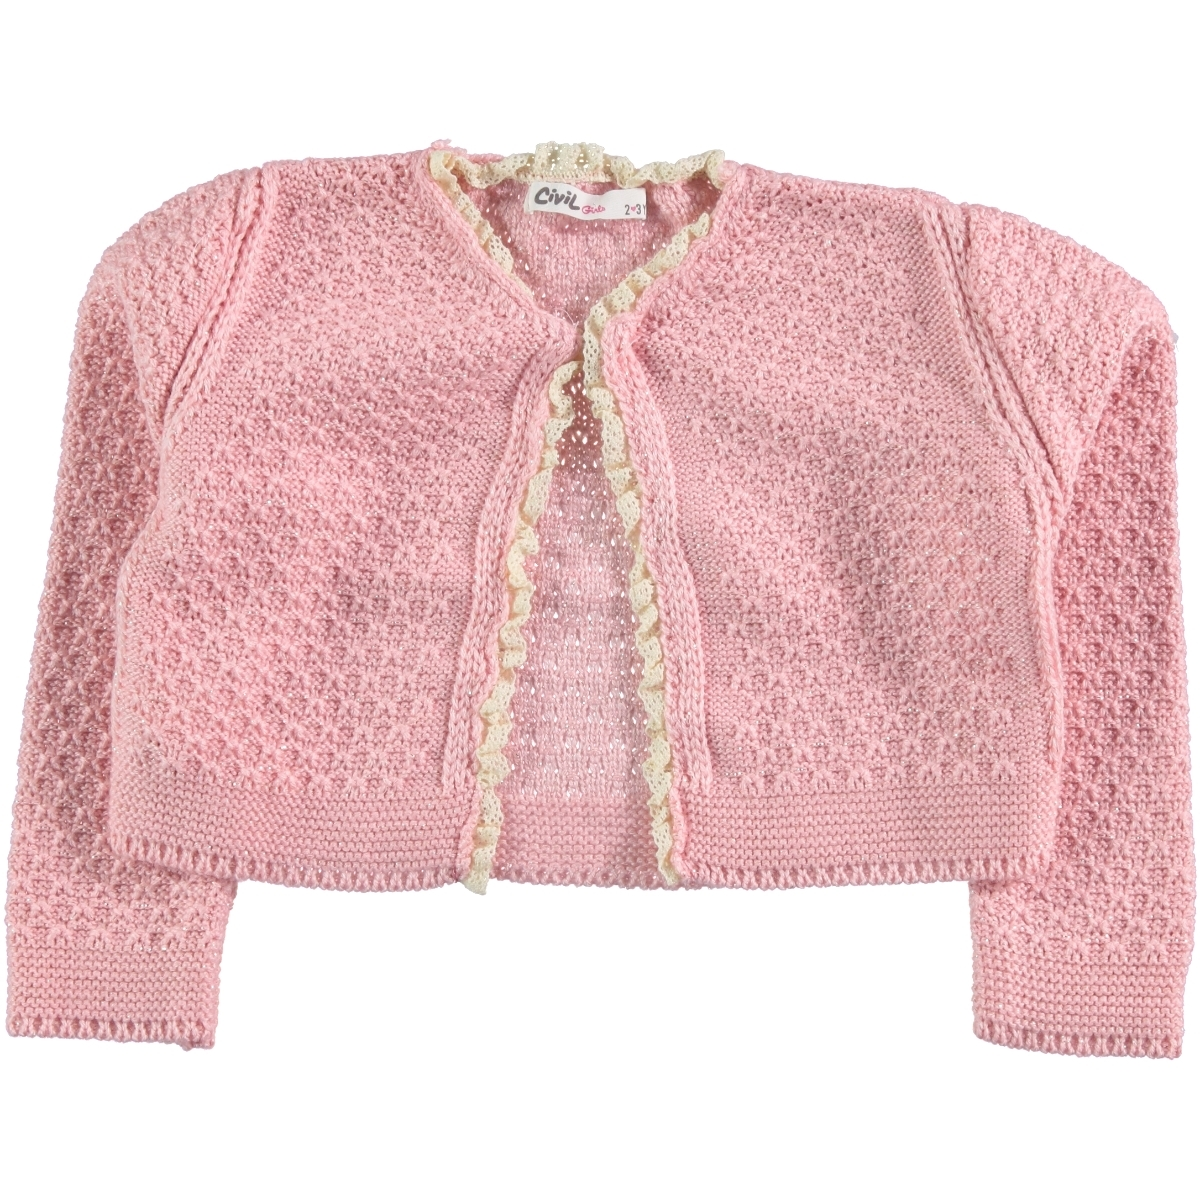 Civil Girls 2-5 Years Girls Pink Bolero